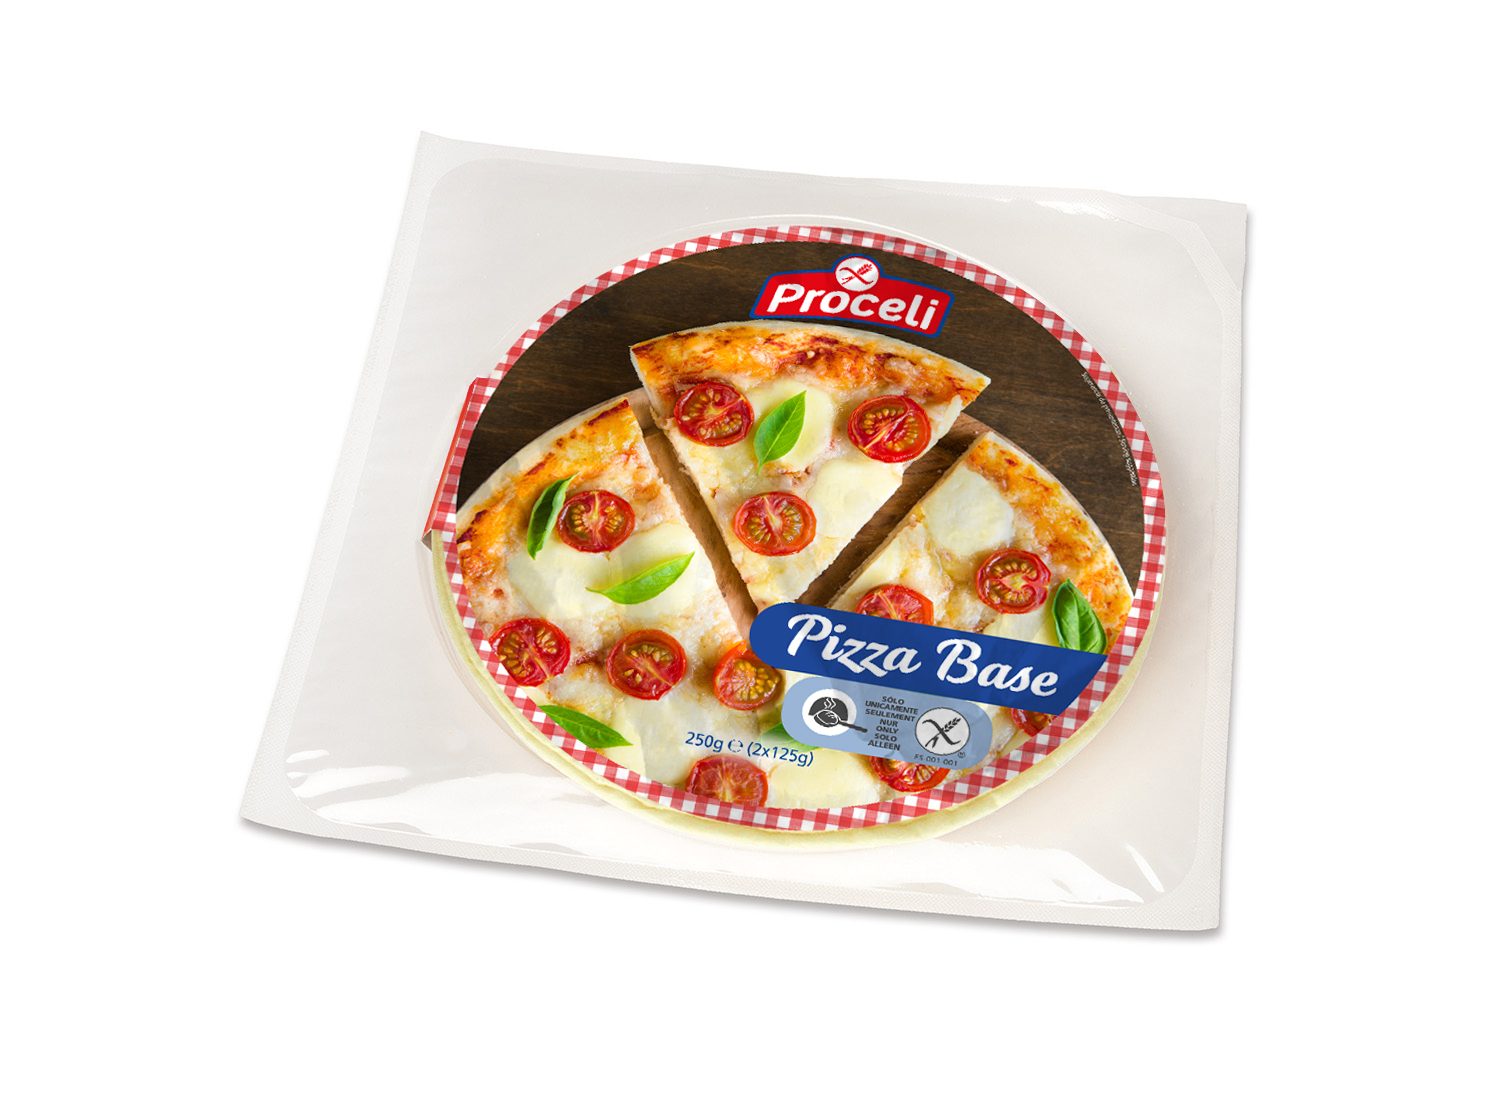 Pack of Pizza-base gluten-free from Proceli